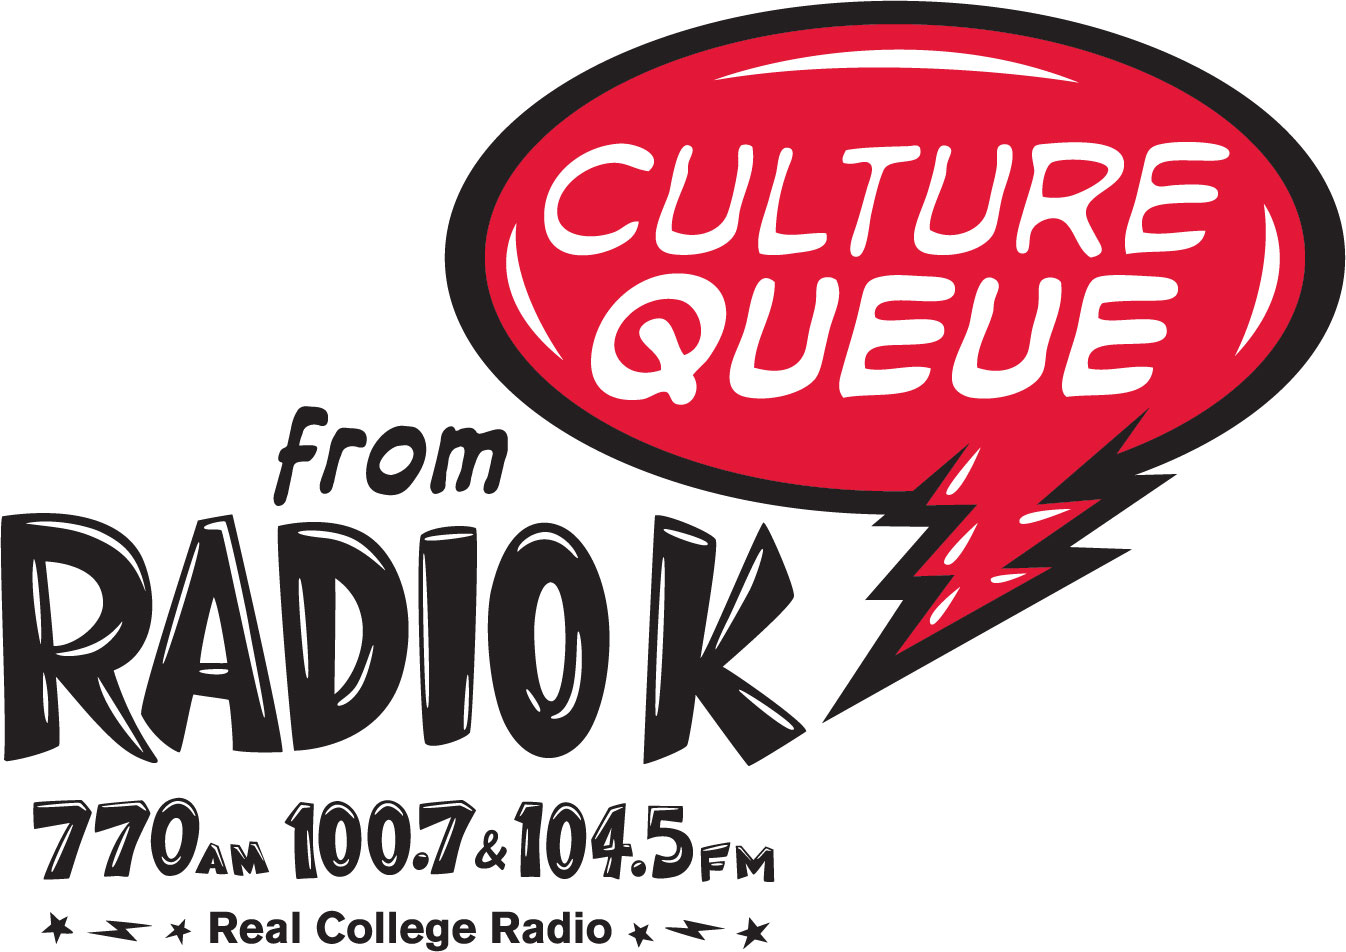 Caption: Radio K - Culture Queue - the art show that rocks., Credit: KUOM